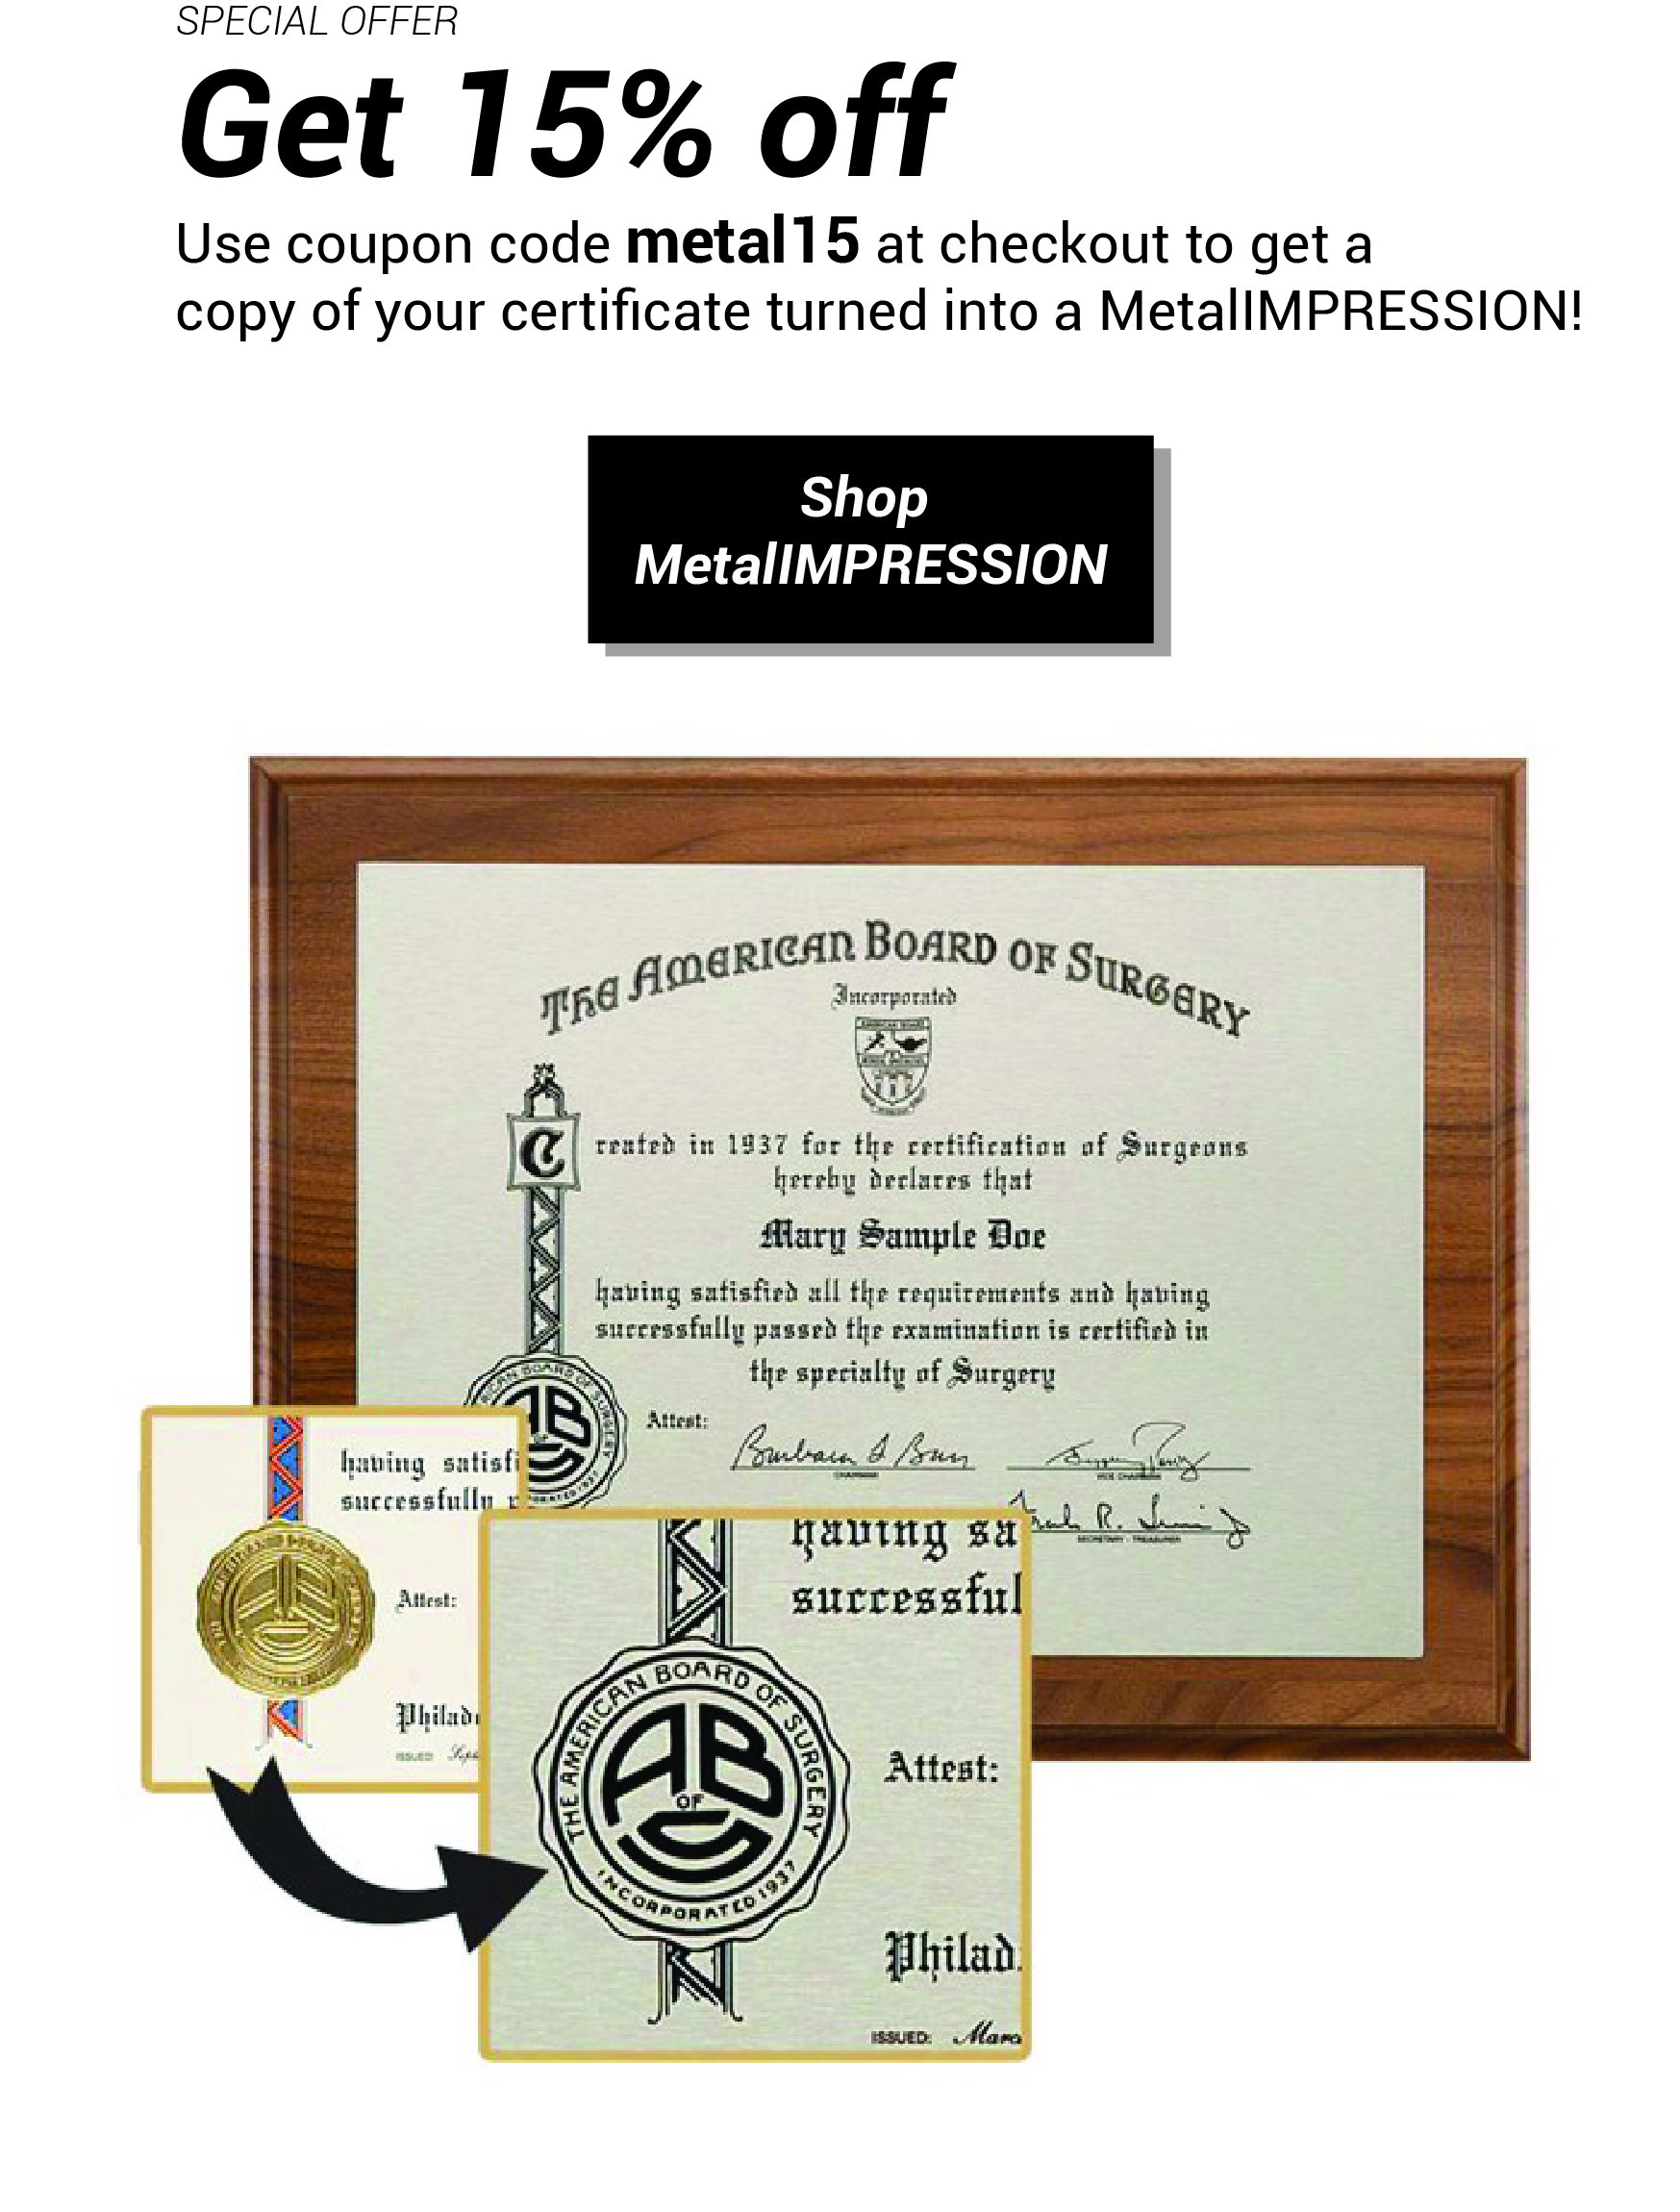 MetalImpression Coupon